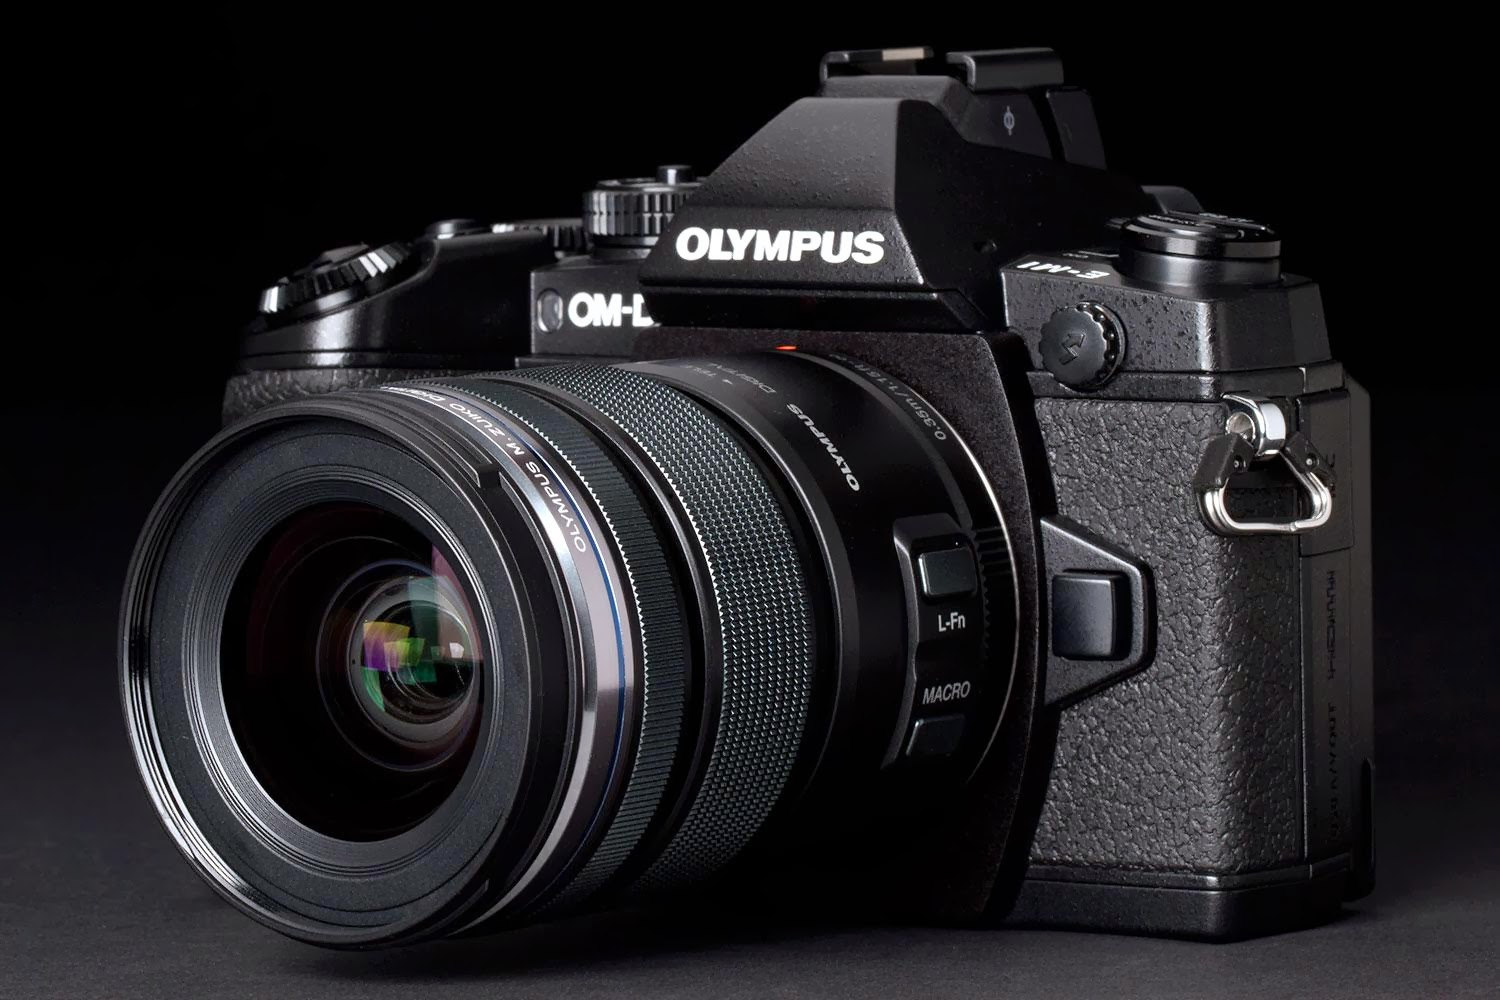 Latest Camera 2014 Hd Wallpaper Free Download Unique Wallpapers